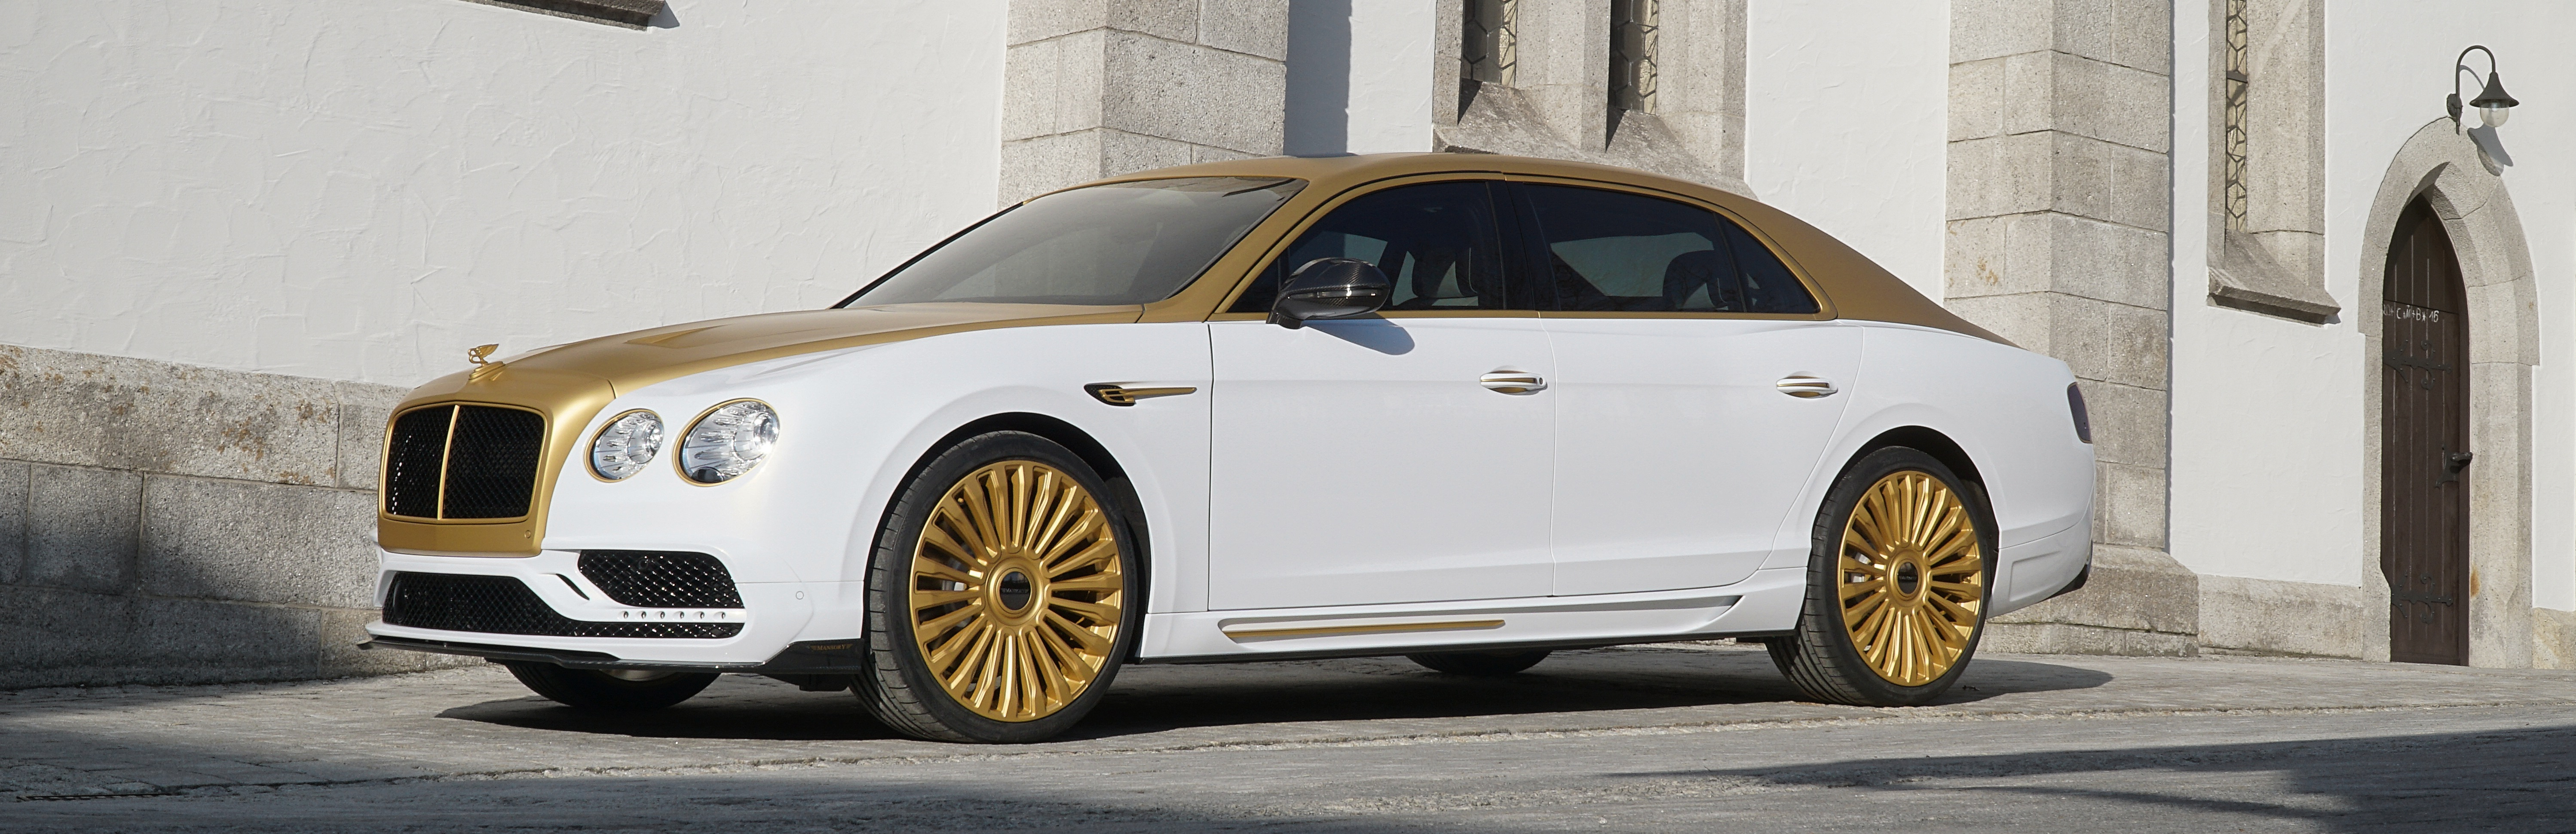 mansory_bentley_flying_spur_new_04.jpg